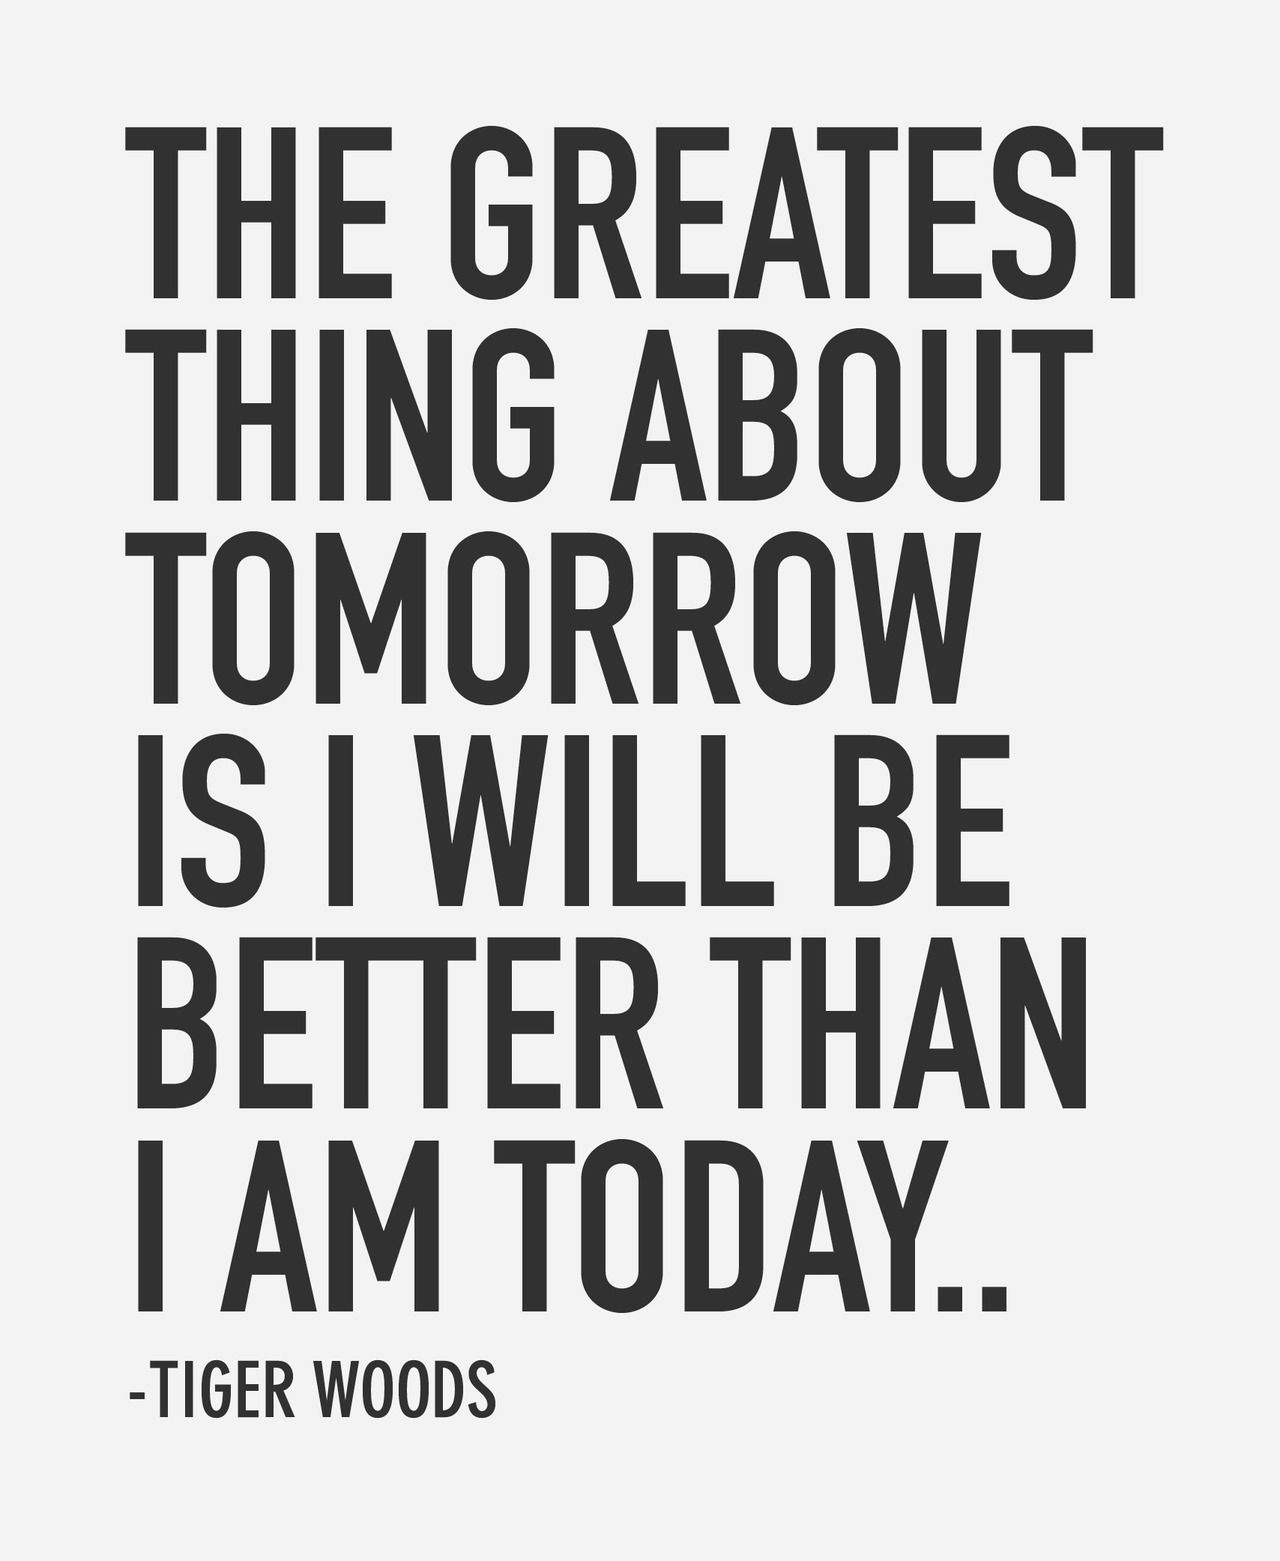 Quotes About Today The Greatest Thing About Tomorrow Is I Will Be Better Than I Am